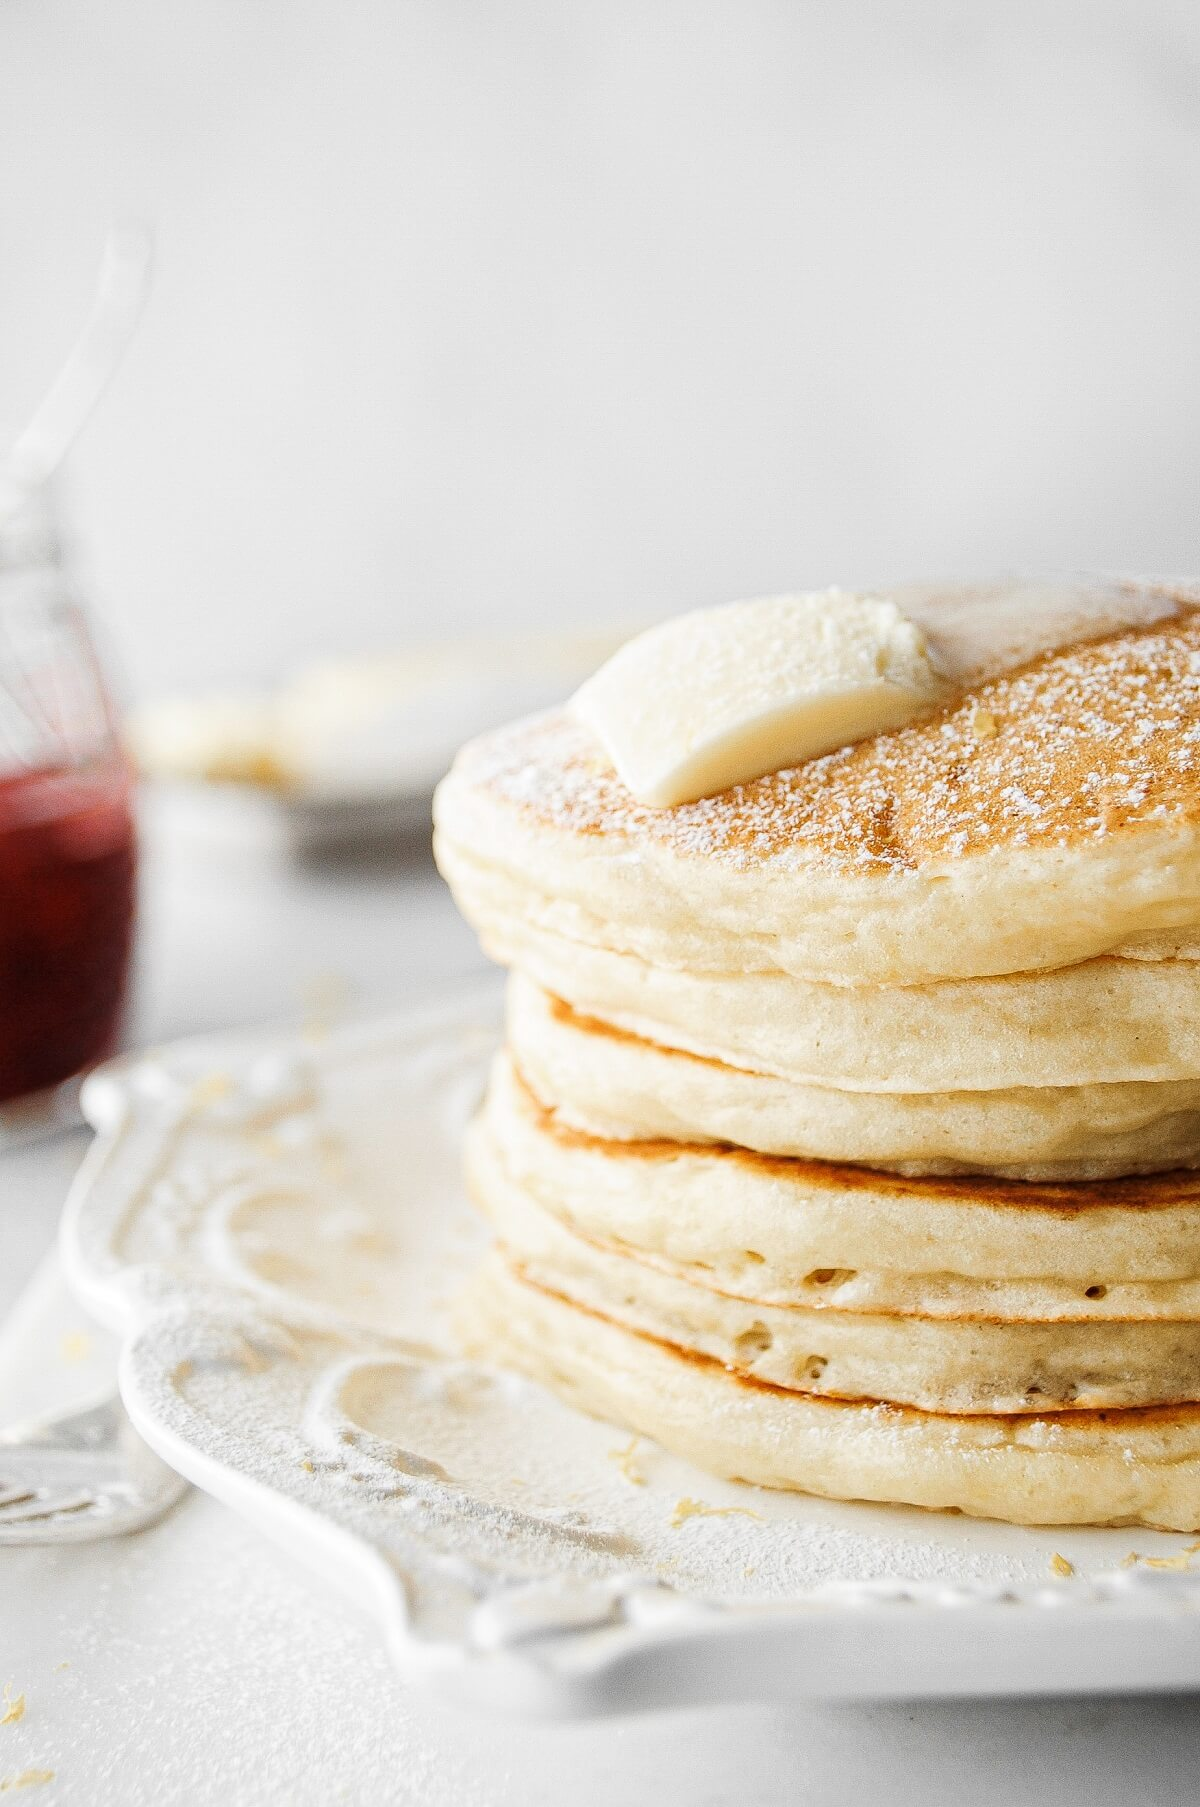 A stack of lemon ricotta pancakes with butter.